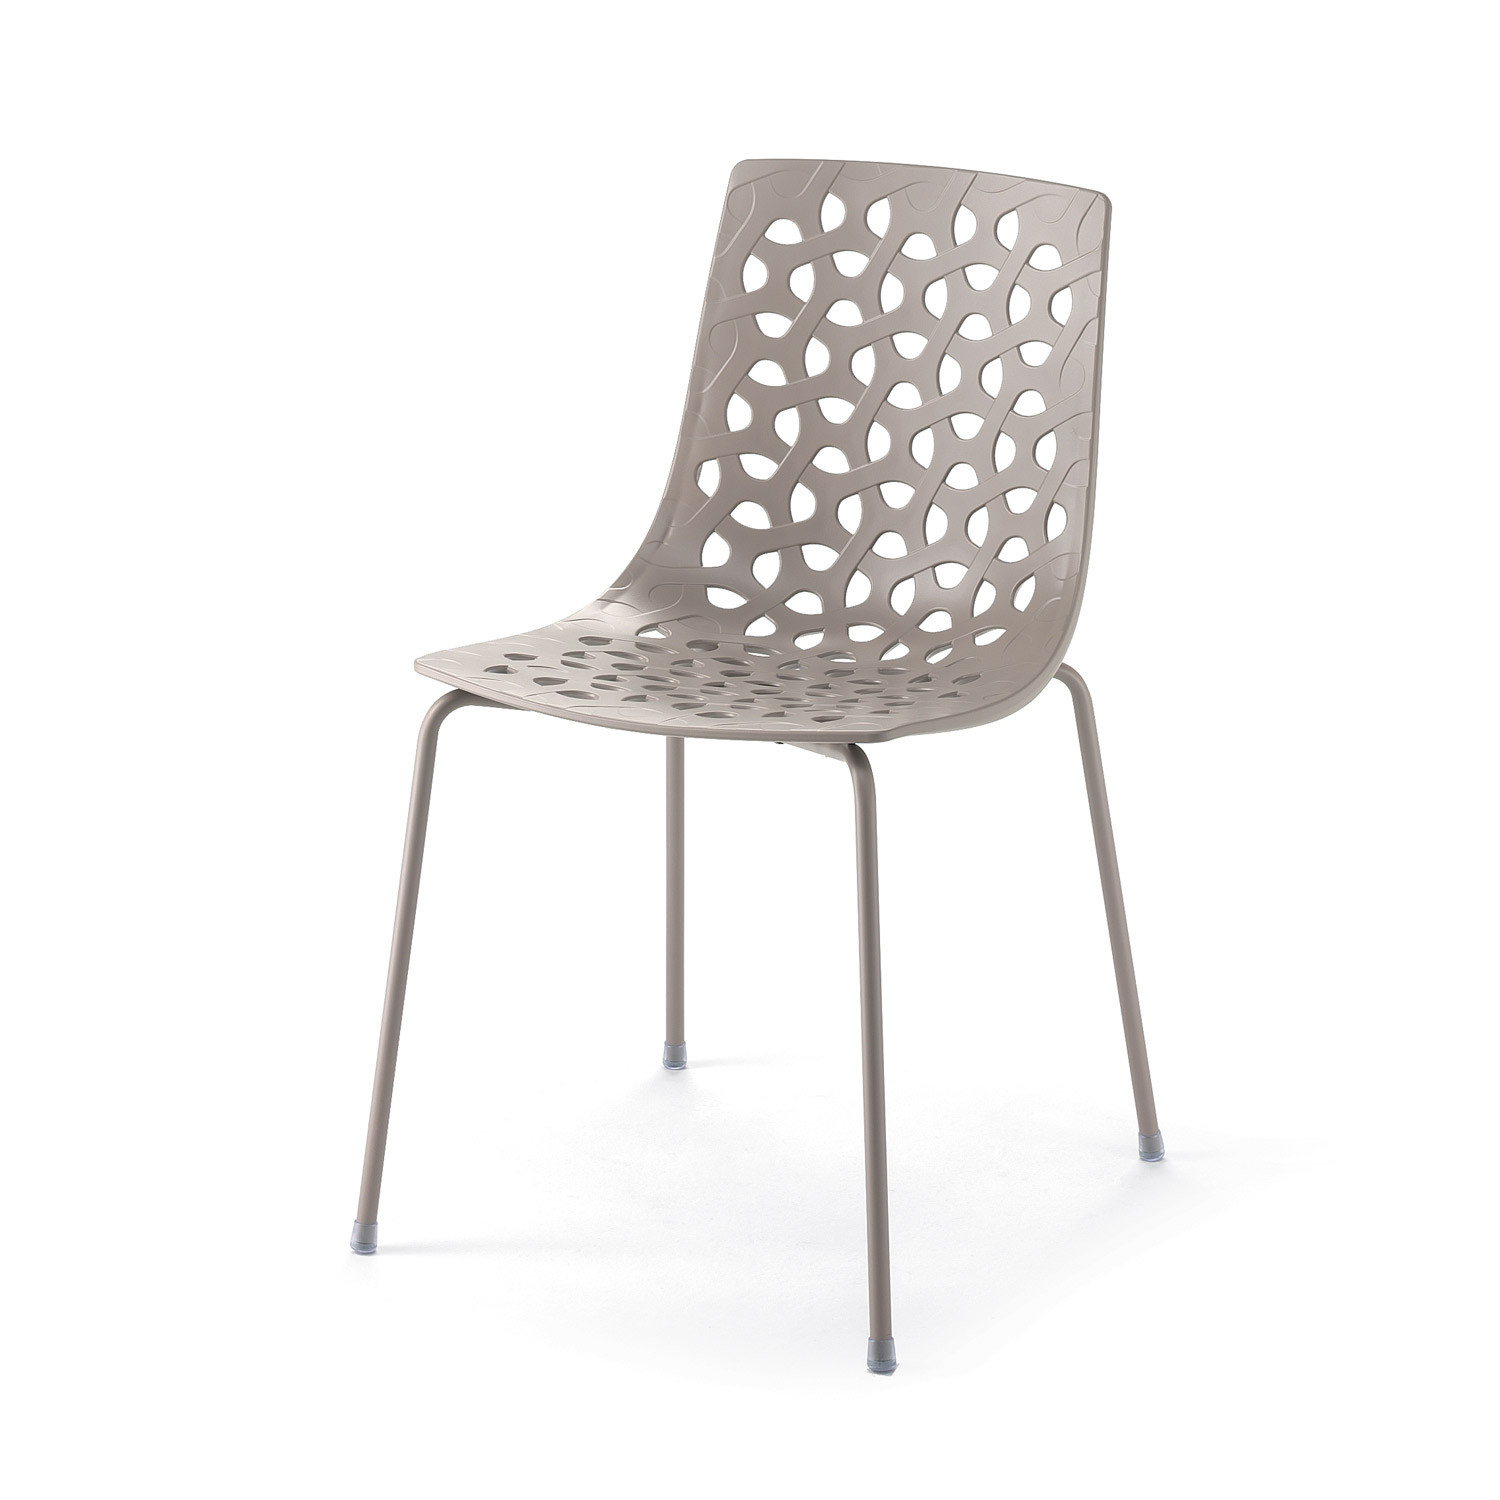 Tess.C Chair